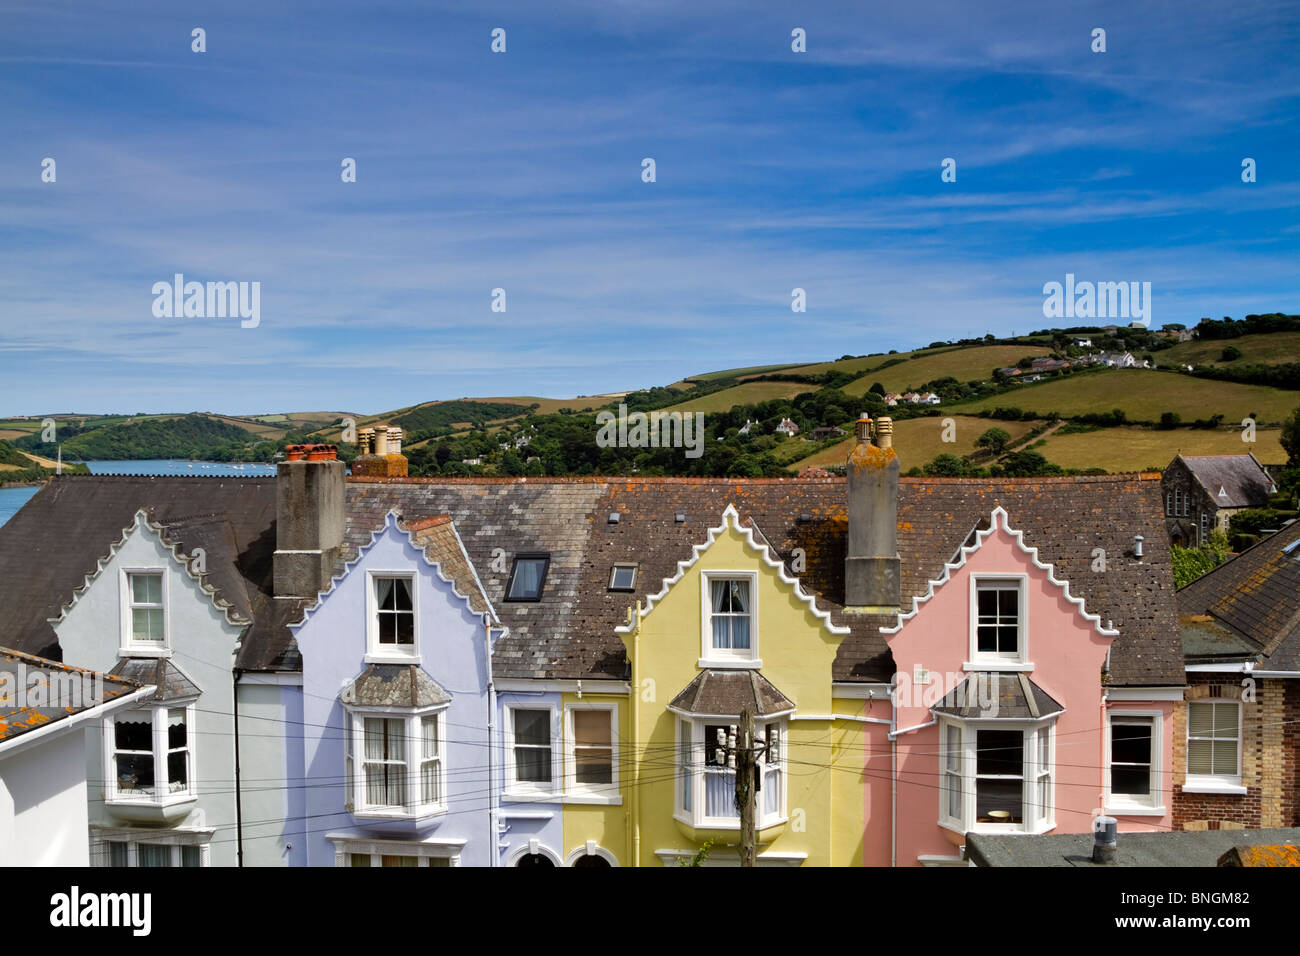 Colourful row of houses, Salcombe, Devon. Steep streets of this holiday town overlook Kingsbridge Estuary and Portlemouth - Stock Image